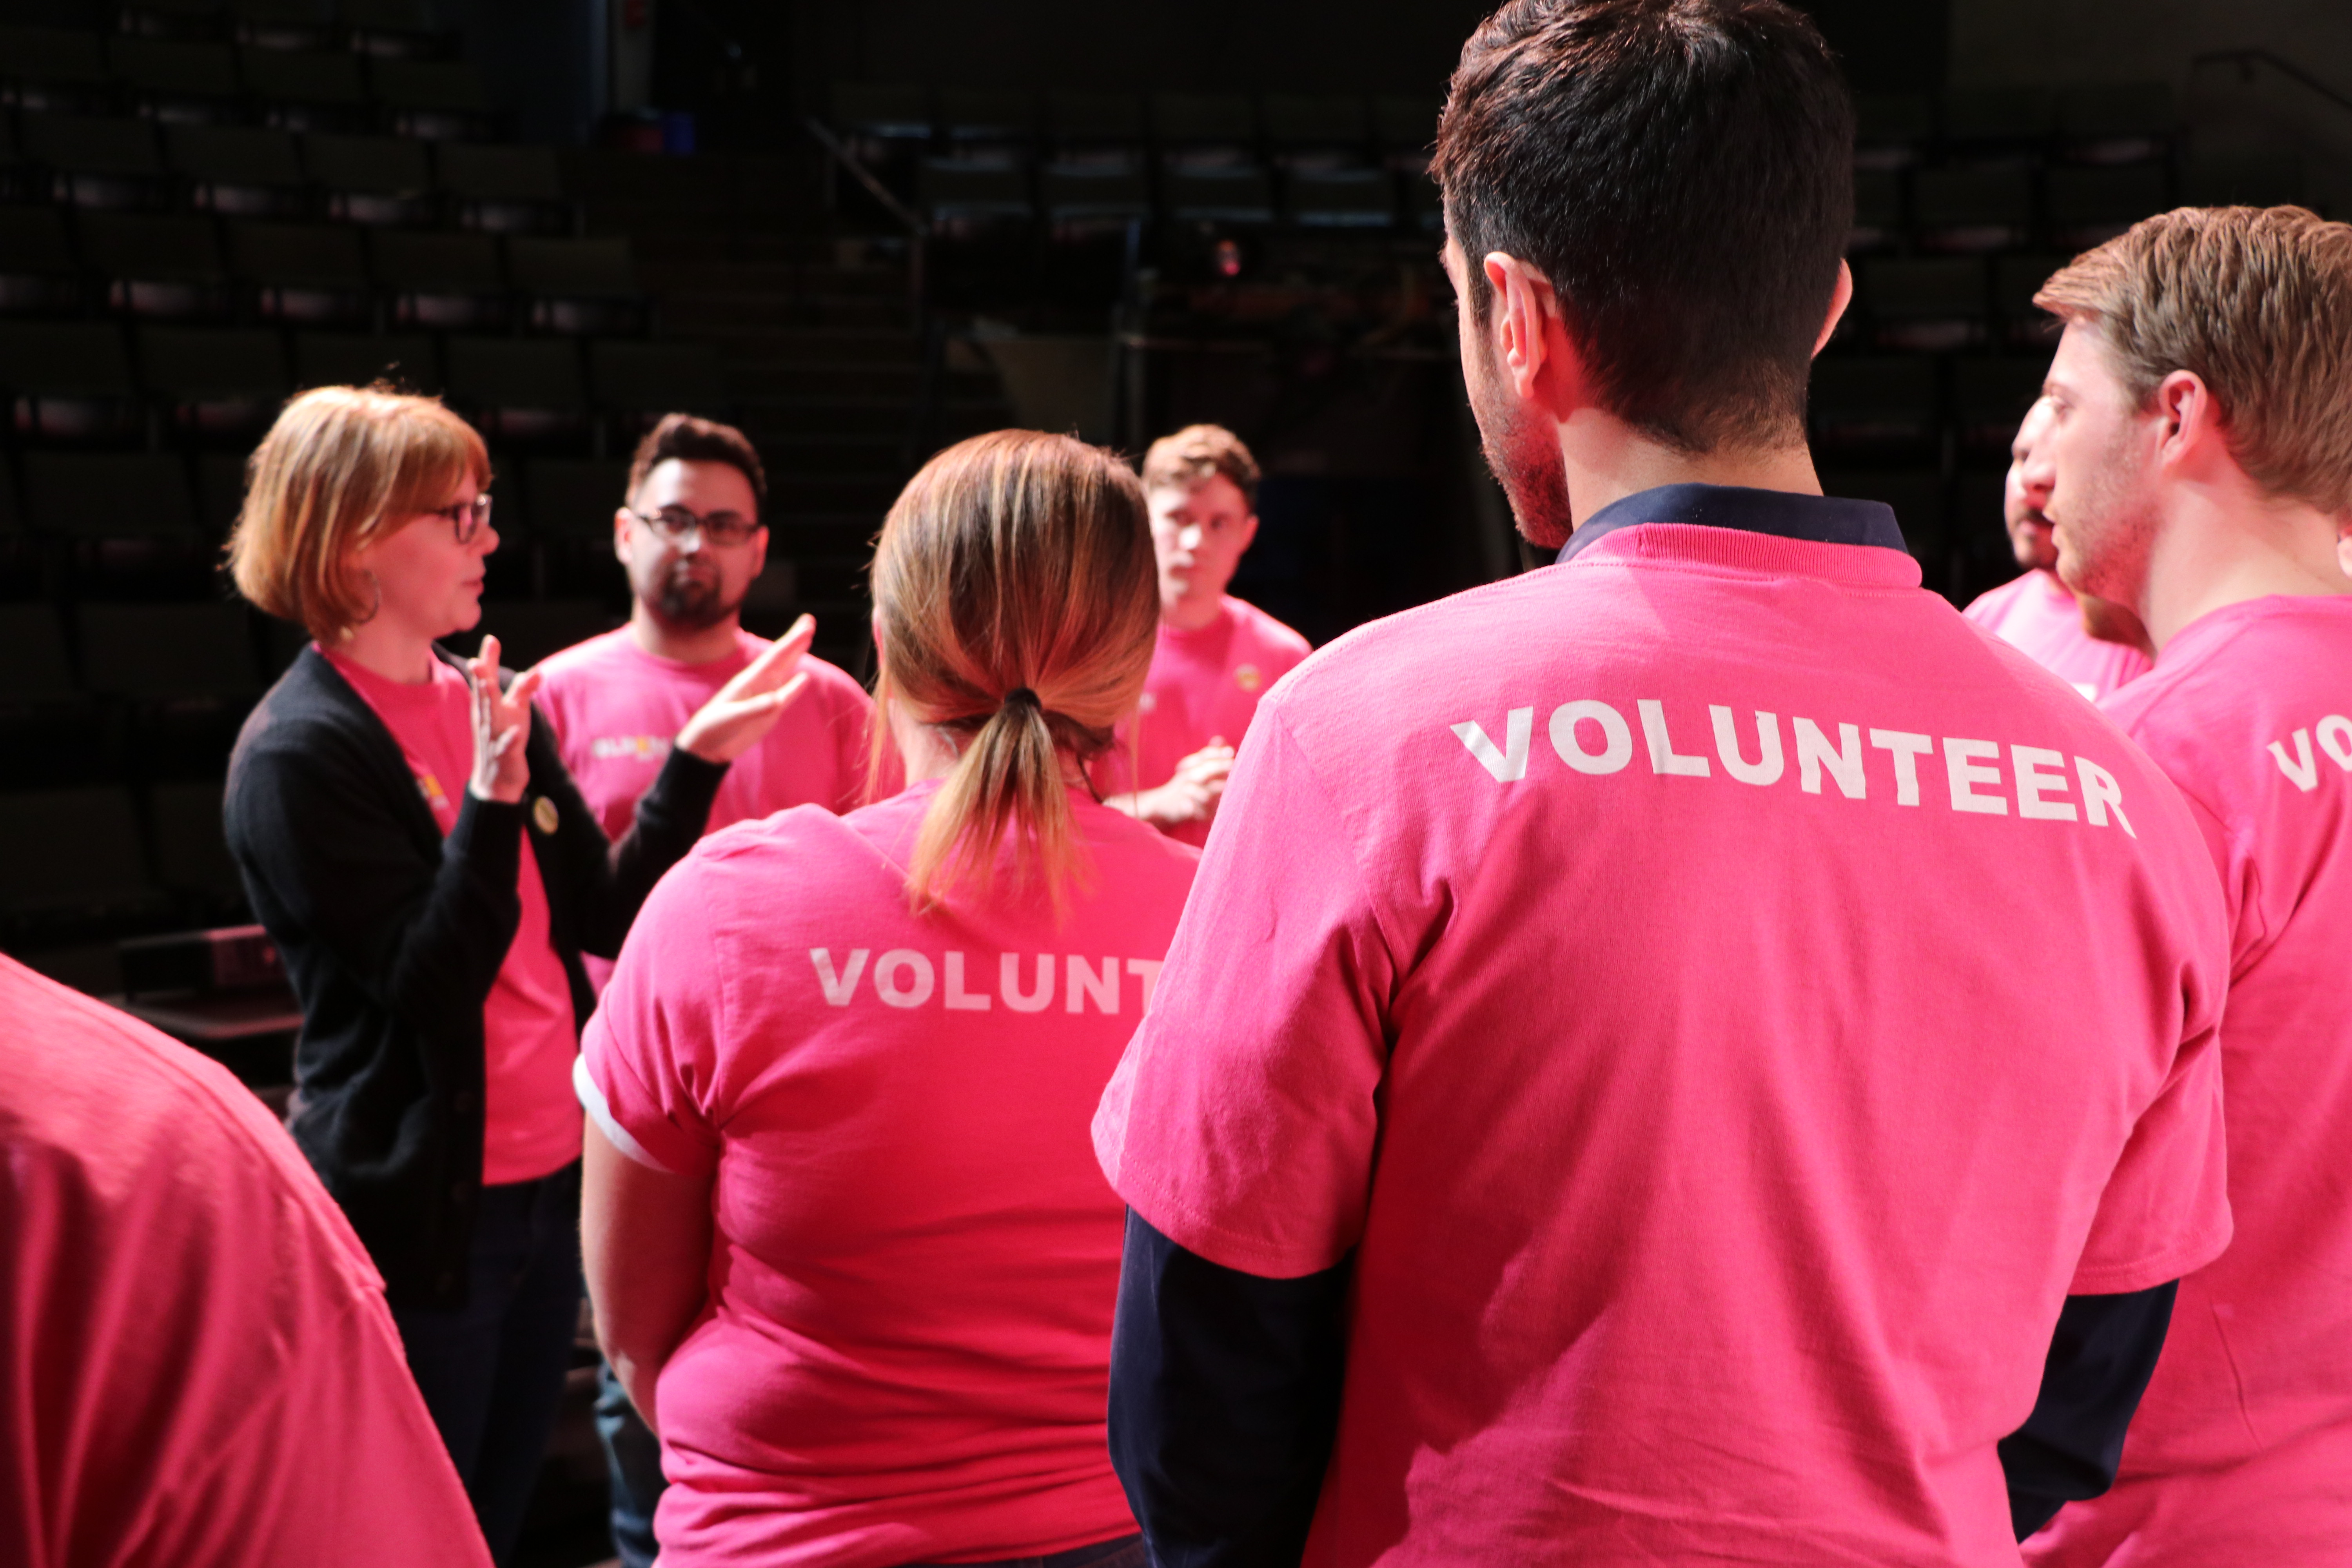 At a GLSEN Greater Cincinatti event, several adult volunteers in pink shirts circle around a speaking volunteer in a black cardigan. The back of the pink shirts reads: VOLUNTEER.